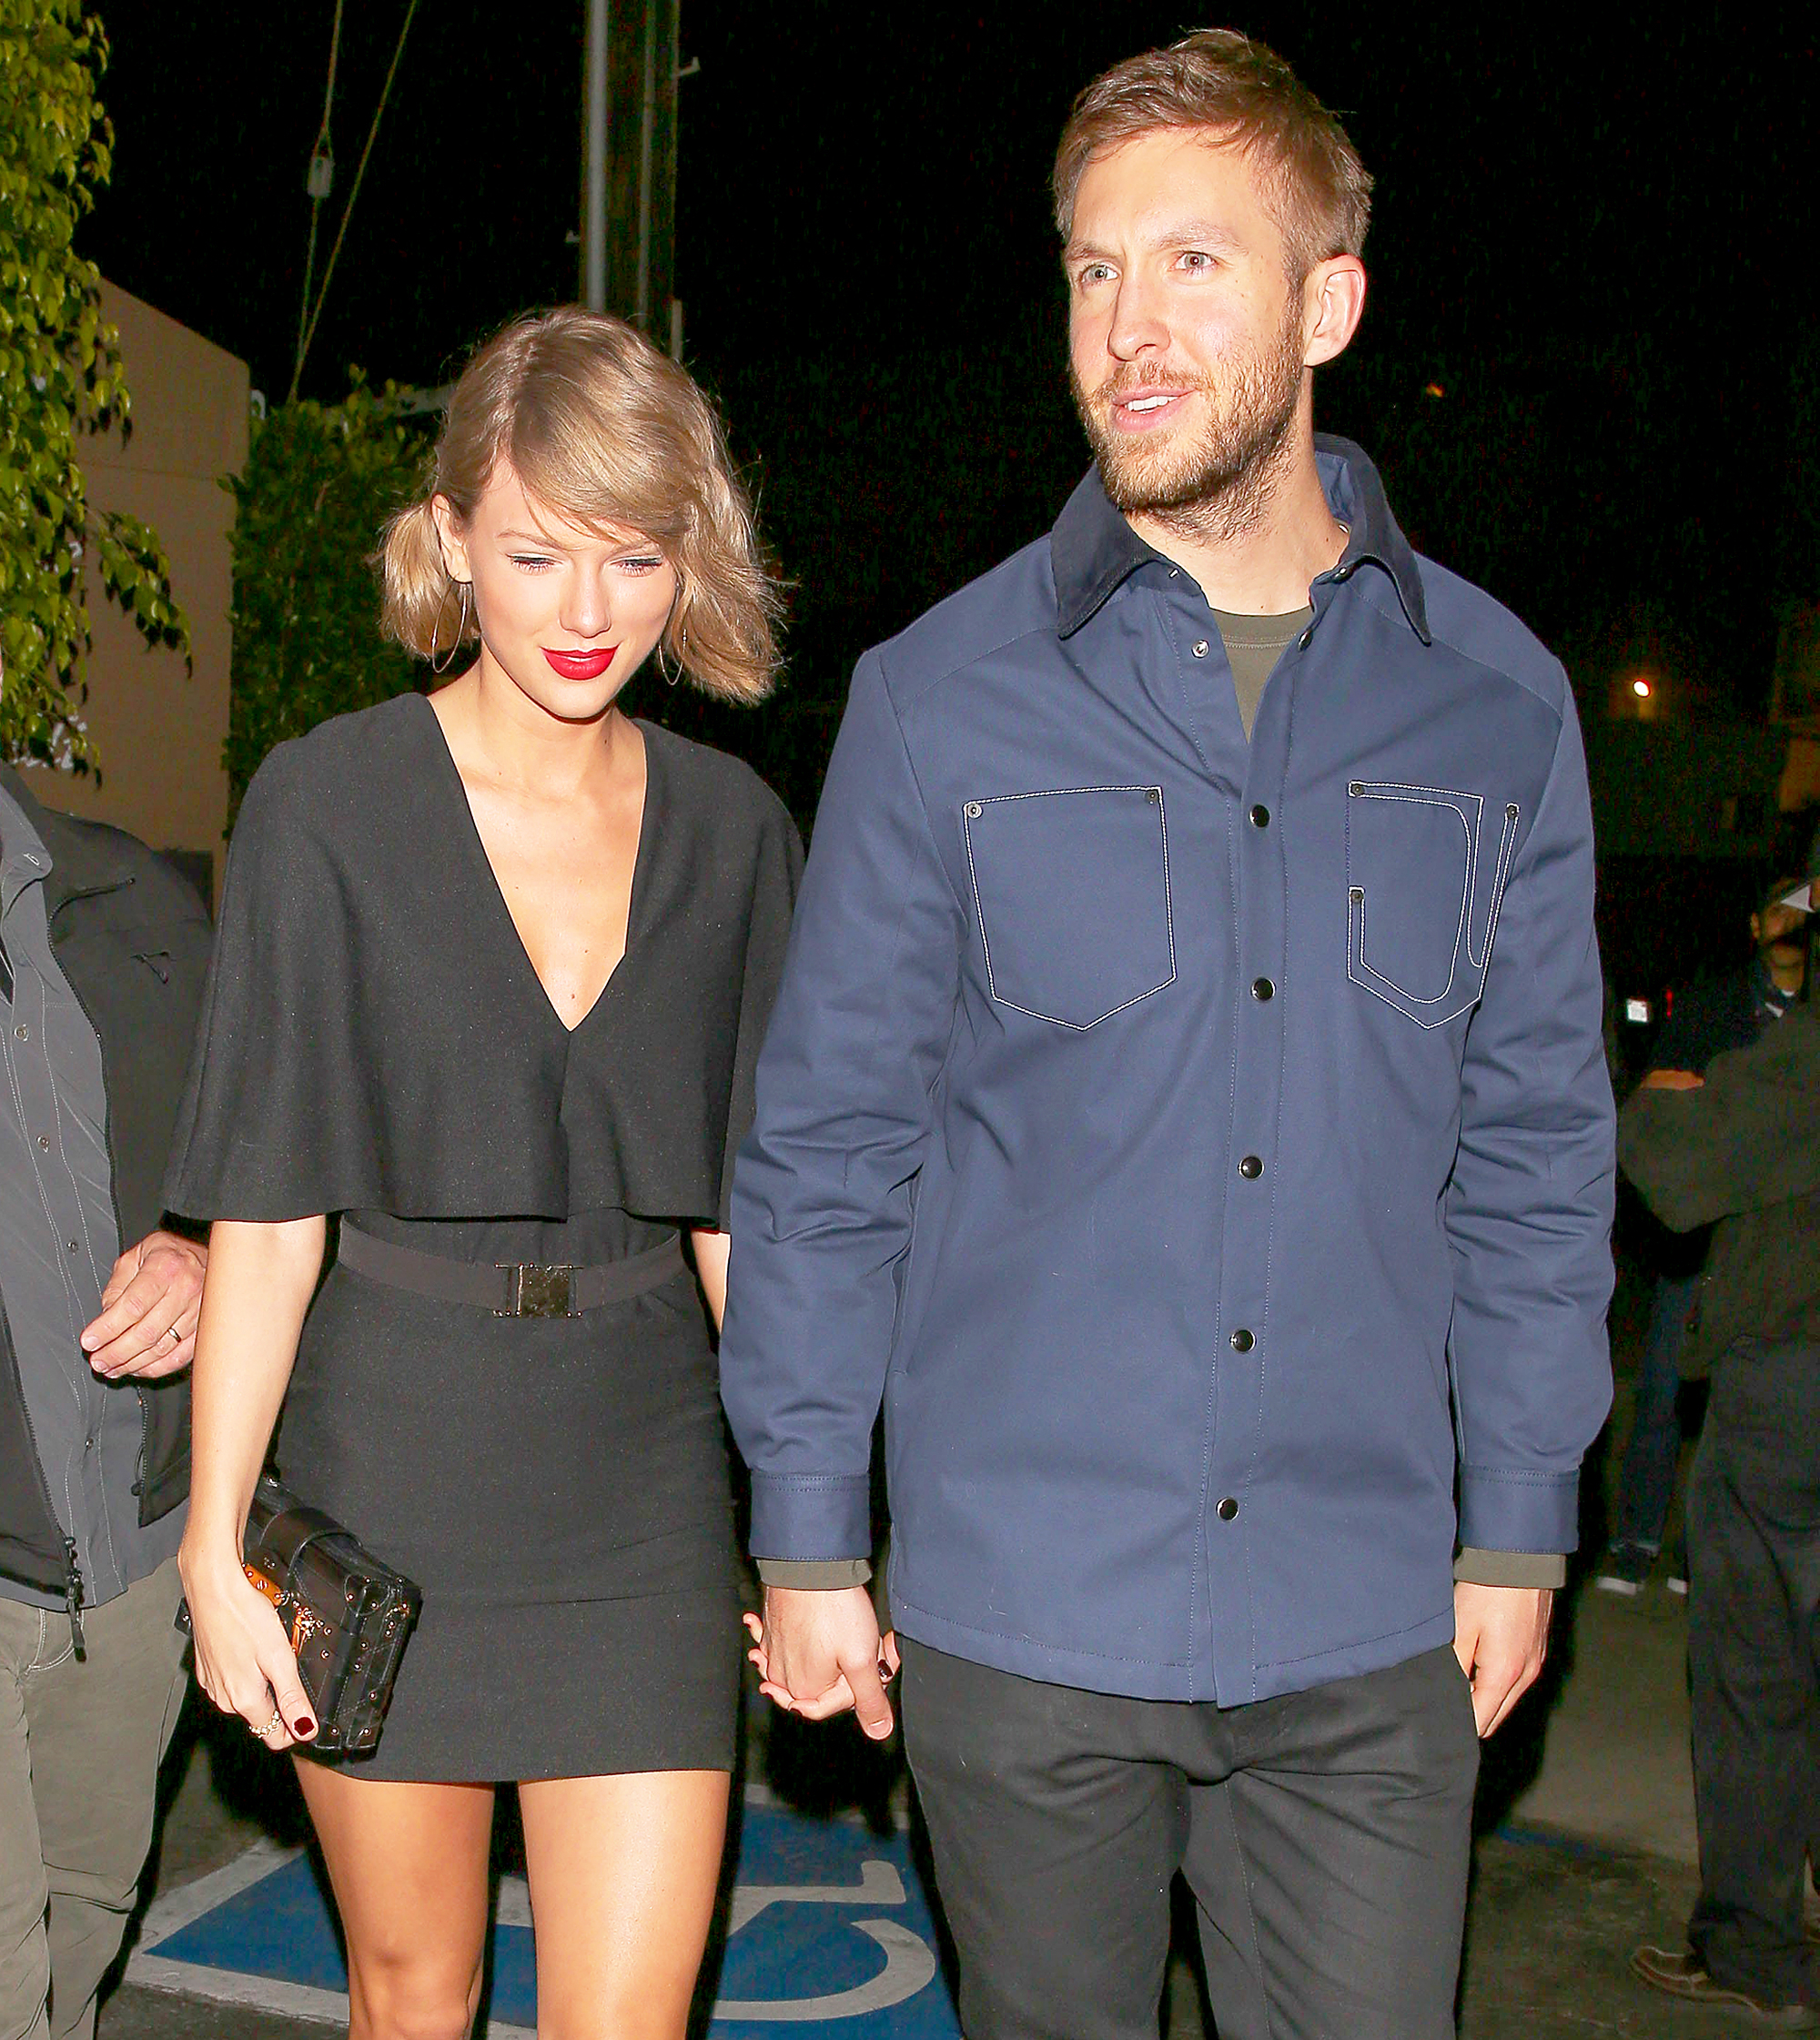 taylor swift calvin harris dating timeline